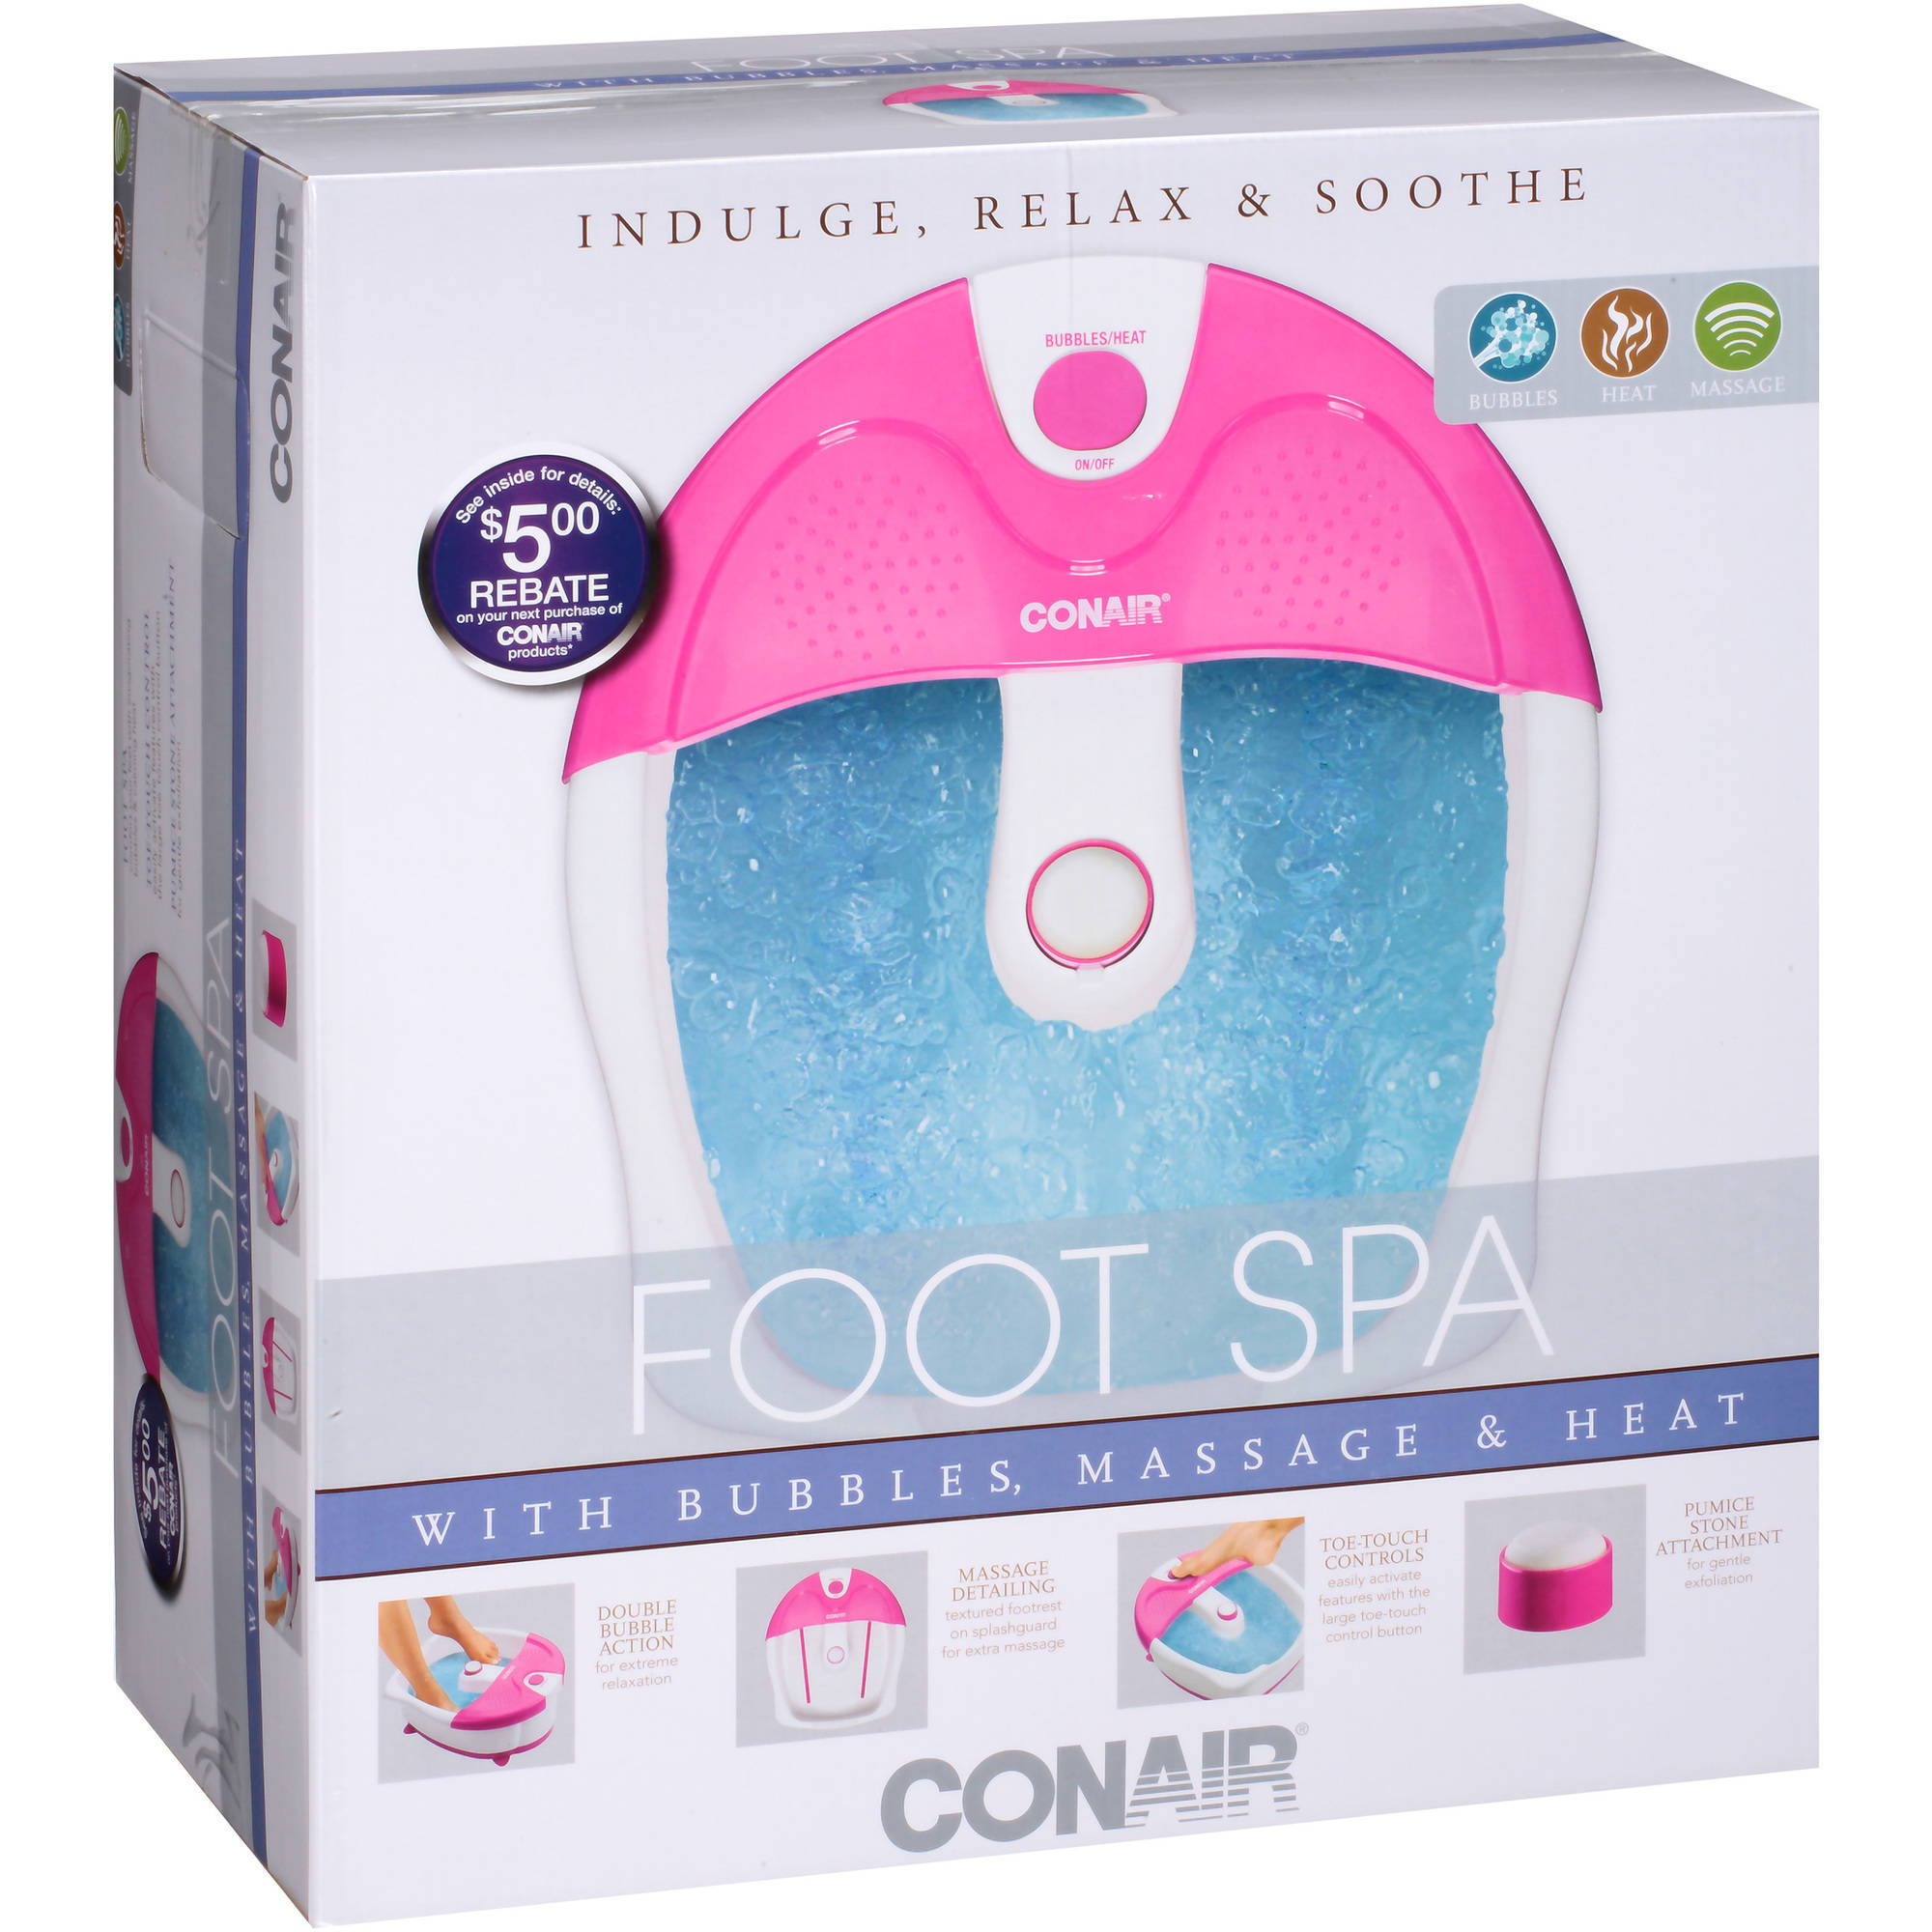 Conair Foot Spa with Bubbles, Massage & Heat, Pink - Walmart.com